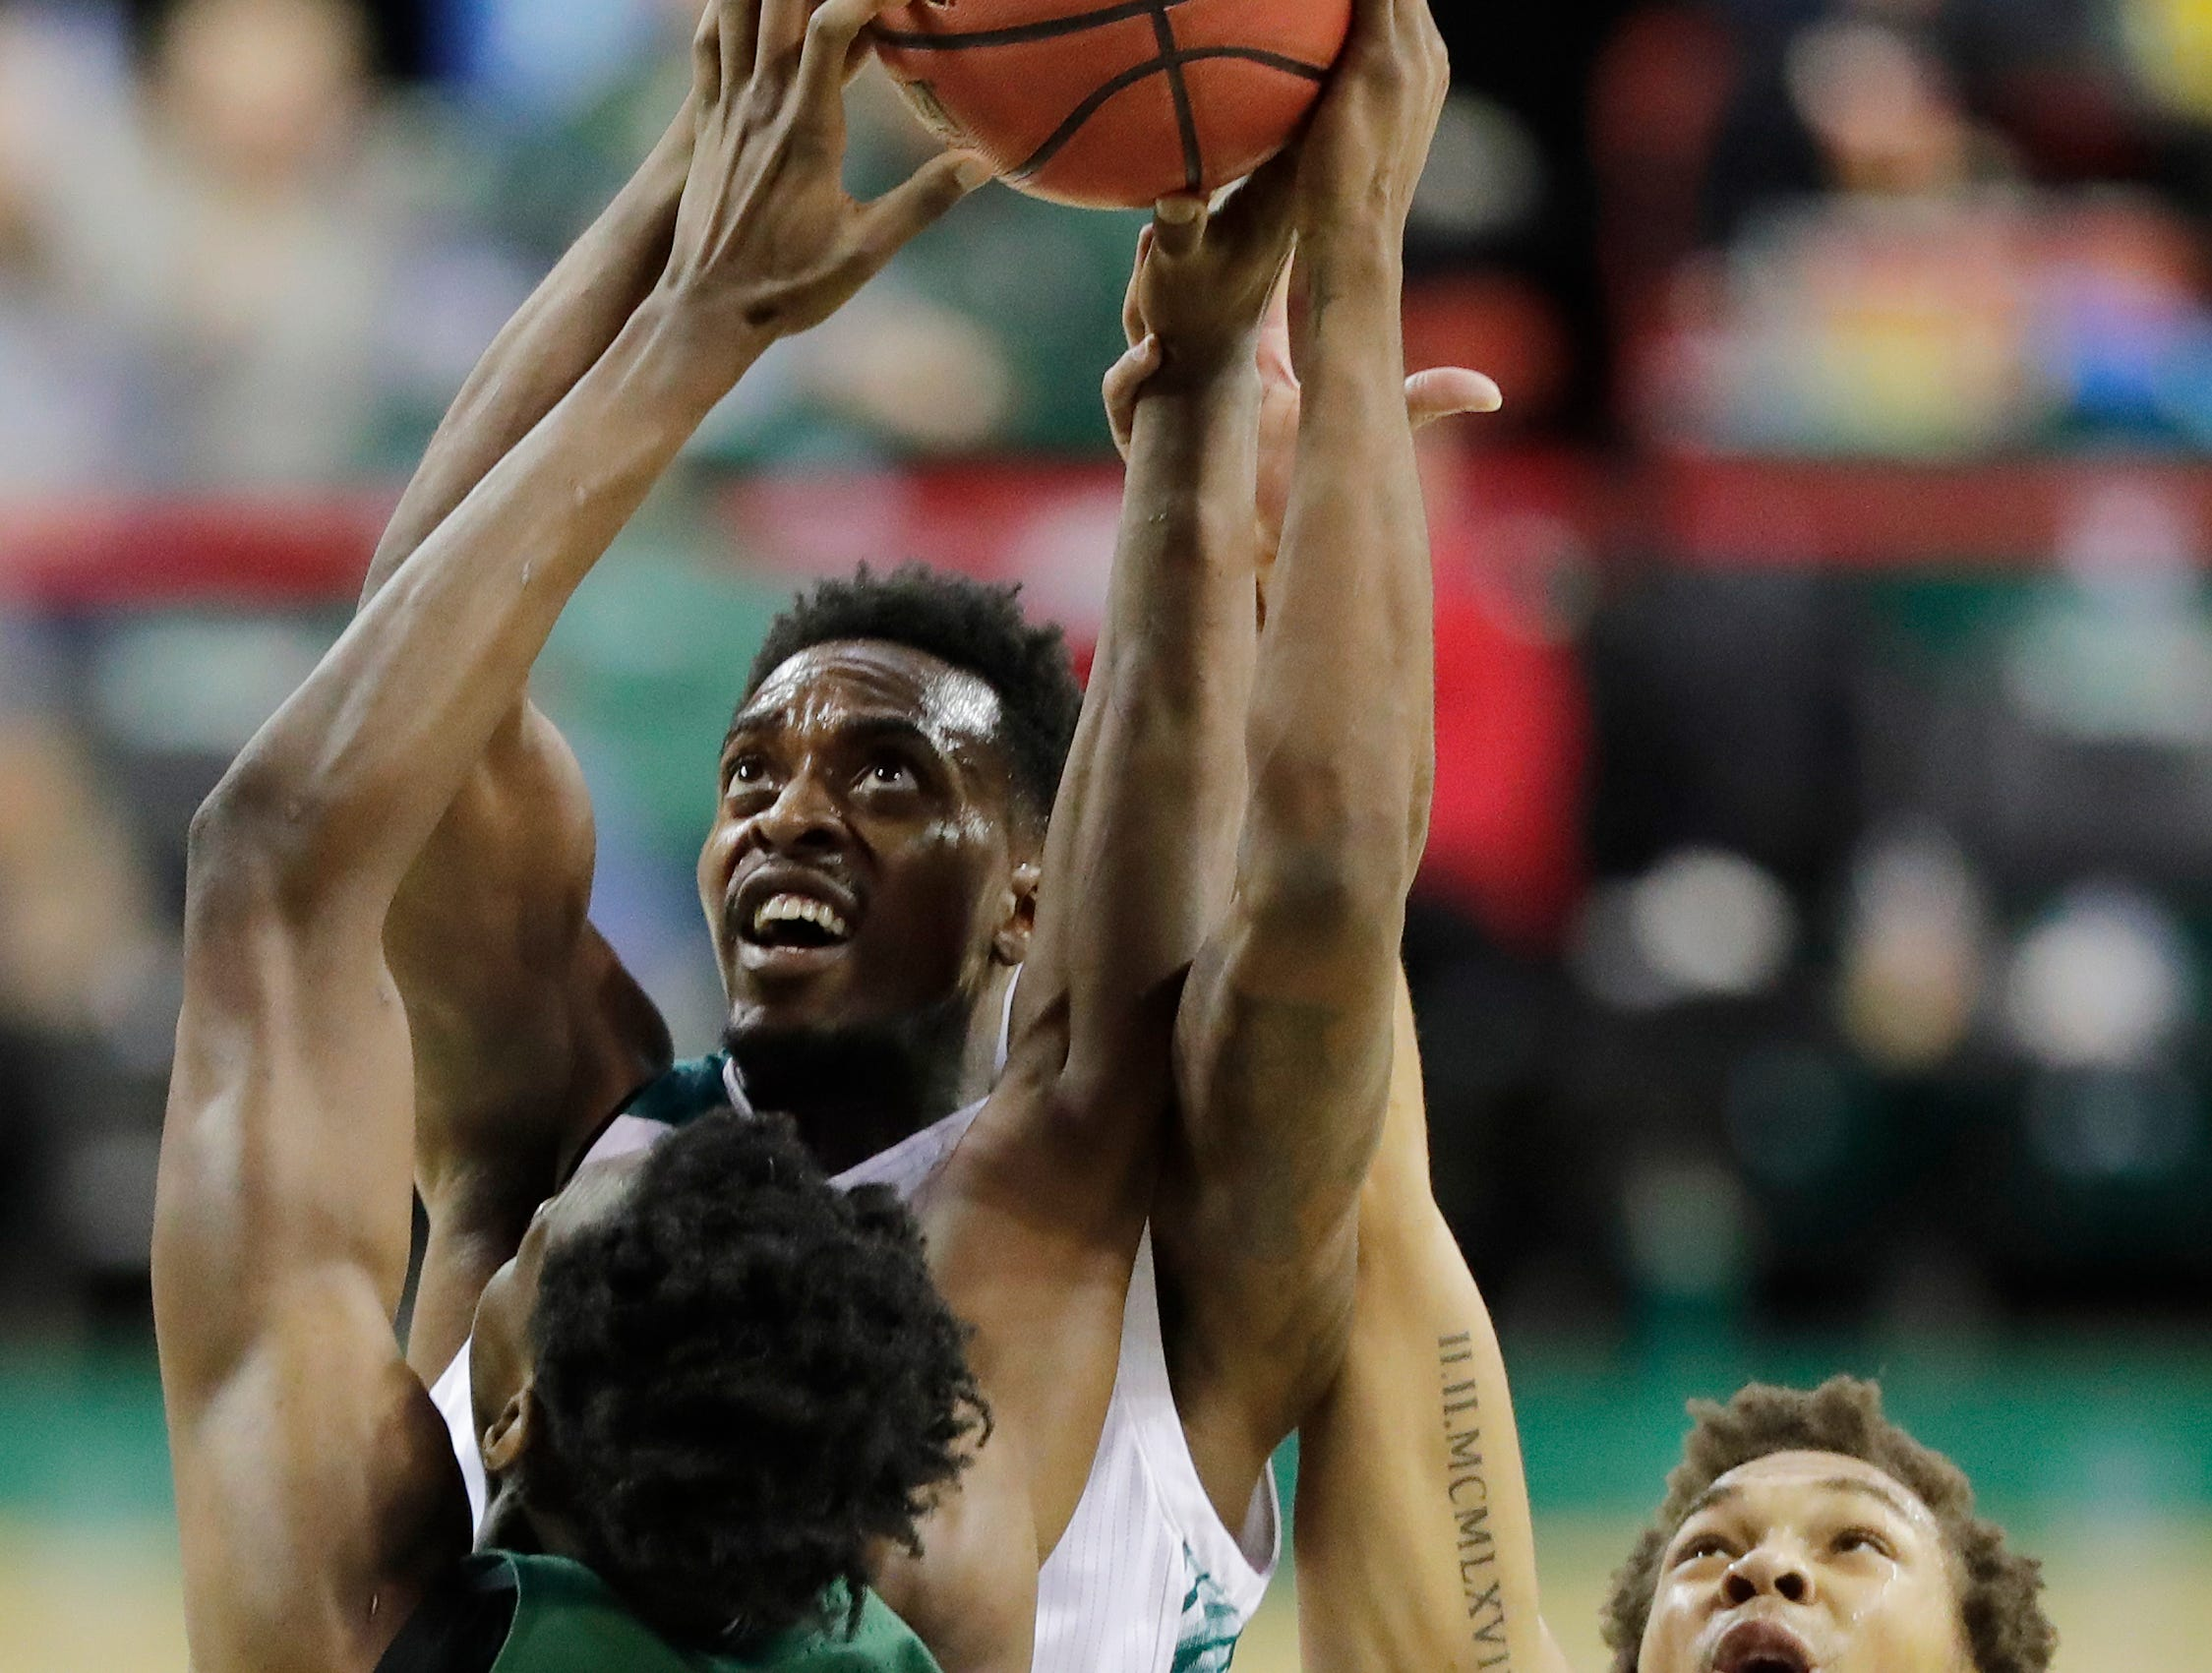 Green Bay Phoenix forward Josh McNair (12) grabs a rebound against Cleveland State Vikings forward Deante Johnson (35) and forward Seth Millner (4) in a Horizon League basketball game at the Resch Center on Saturday, January 5, 2019 in Green Bay, Wis.